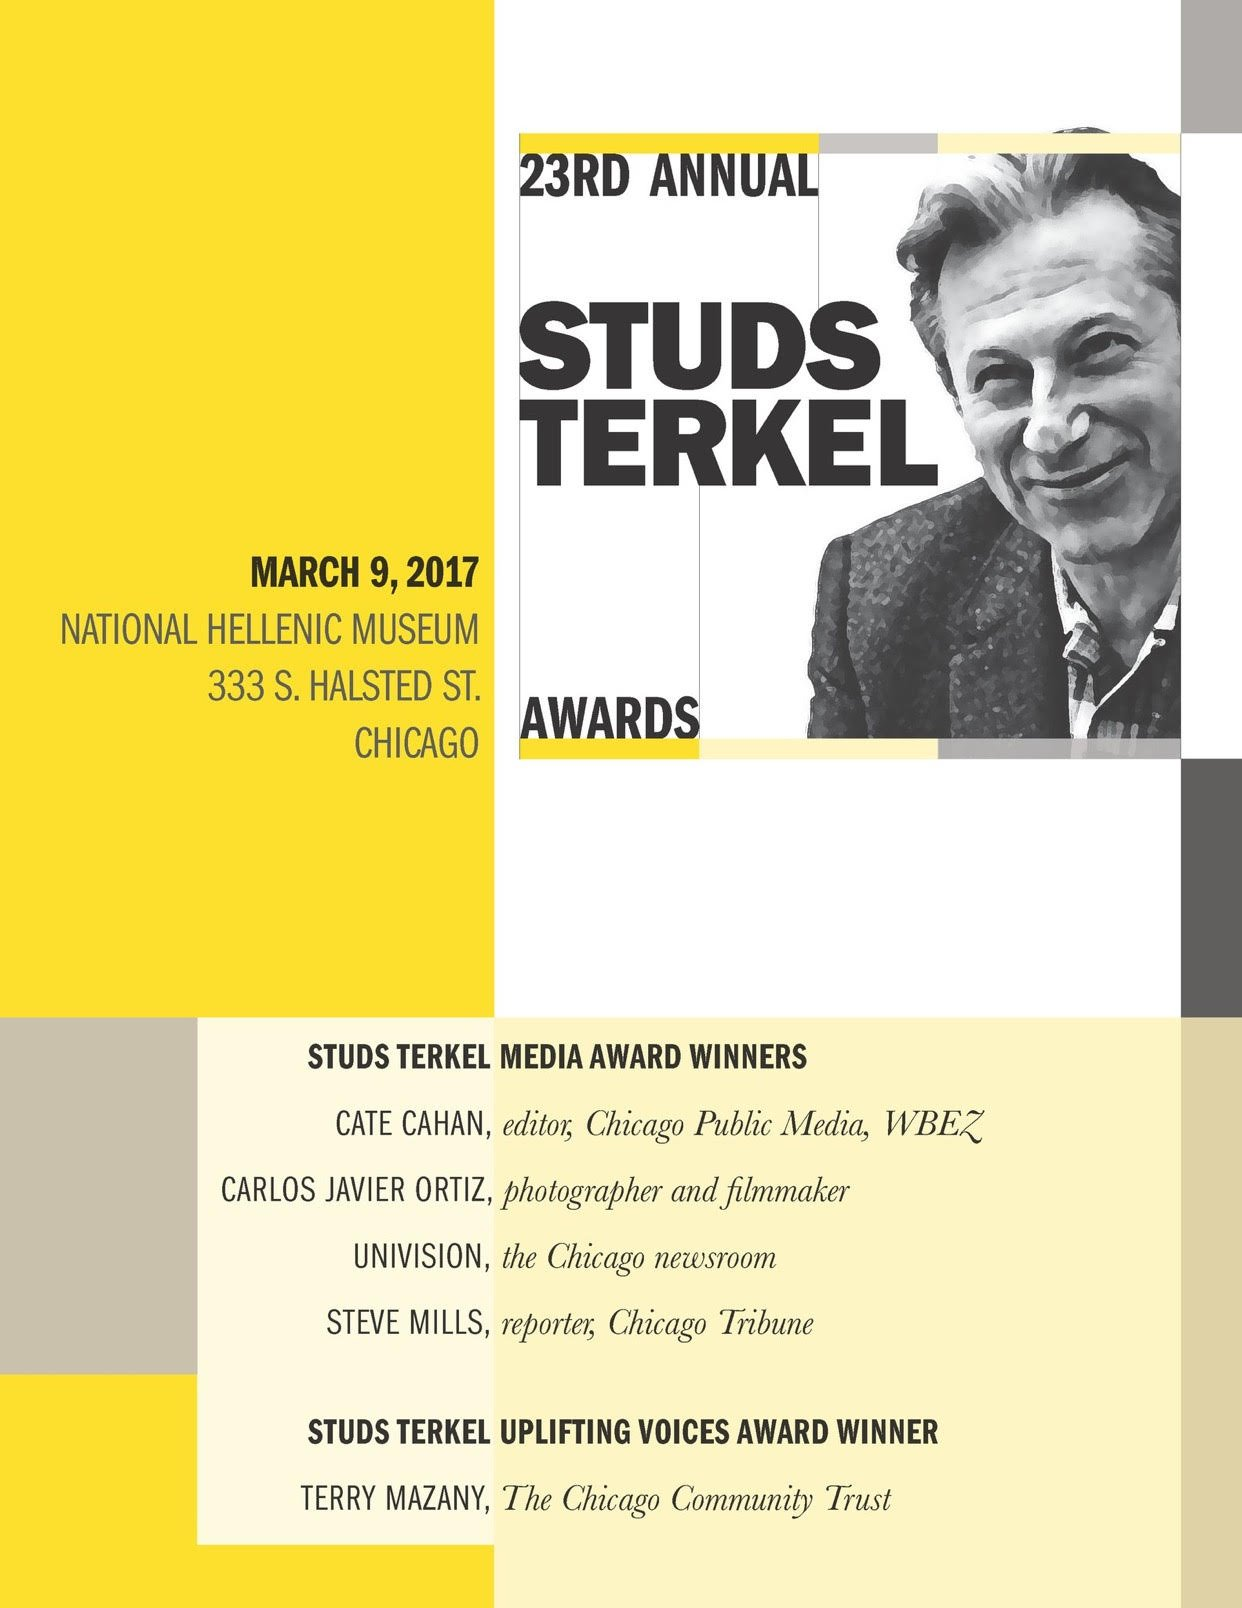 Lookn 4wrd2 MC'in @PublicNarrative #StudsTerkelAwards w/@monicaeng 2nite Cngrats @CateCahan @carlosjaortiz @smmills1960 @Univision #Chicago! https://t.co/bRbtsEOn4V